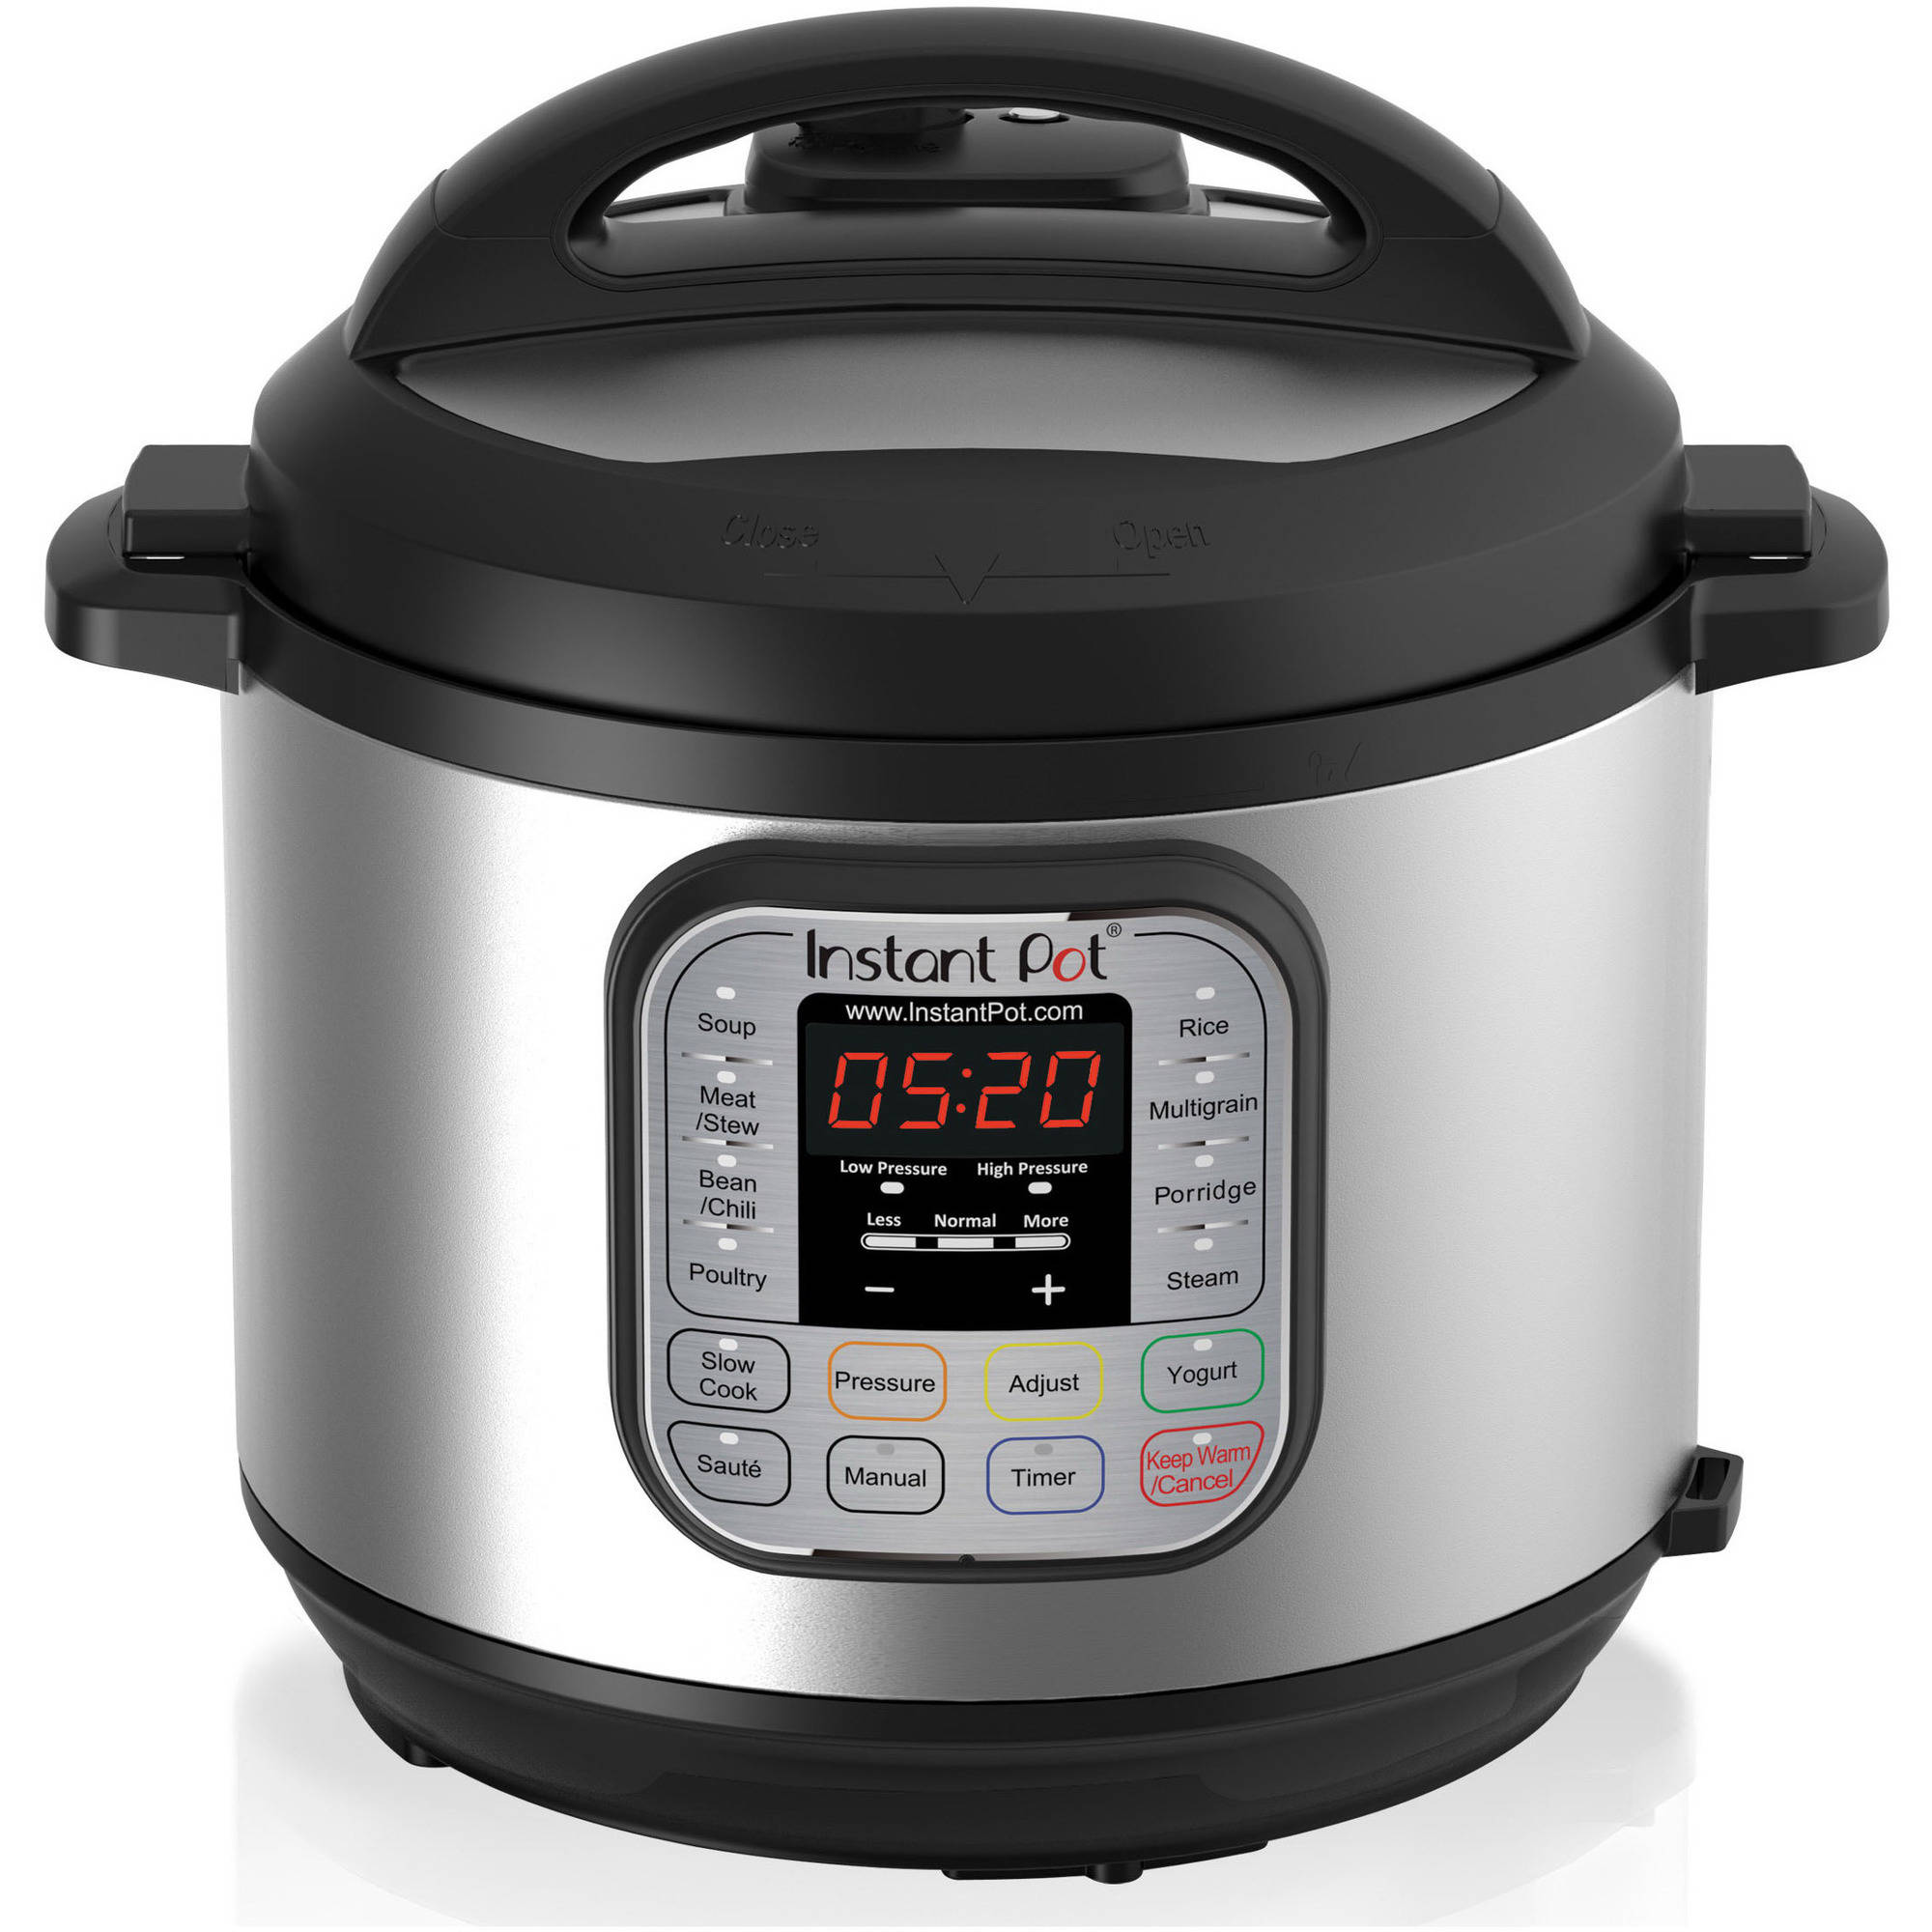 Instant Pot IP-DUO50-ENW Stainless Steel 7-in-1 Pressure Cooker